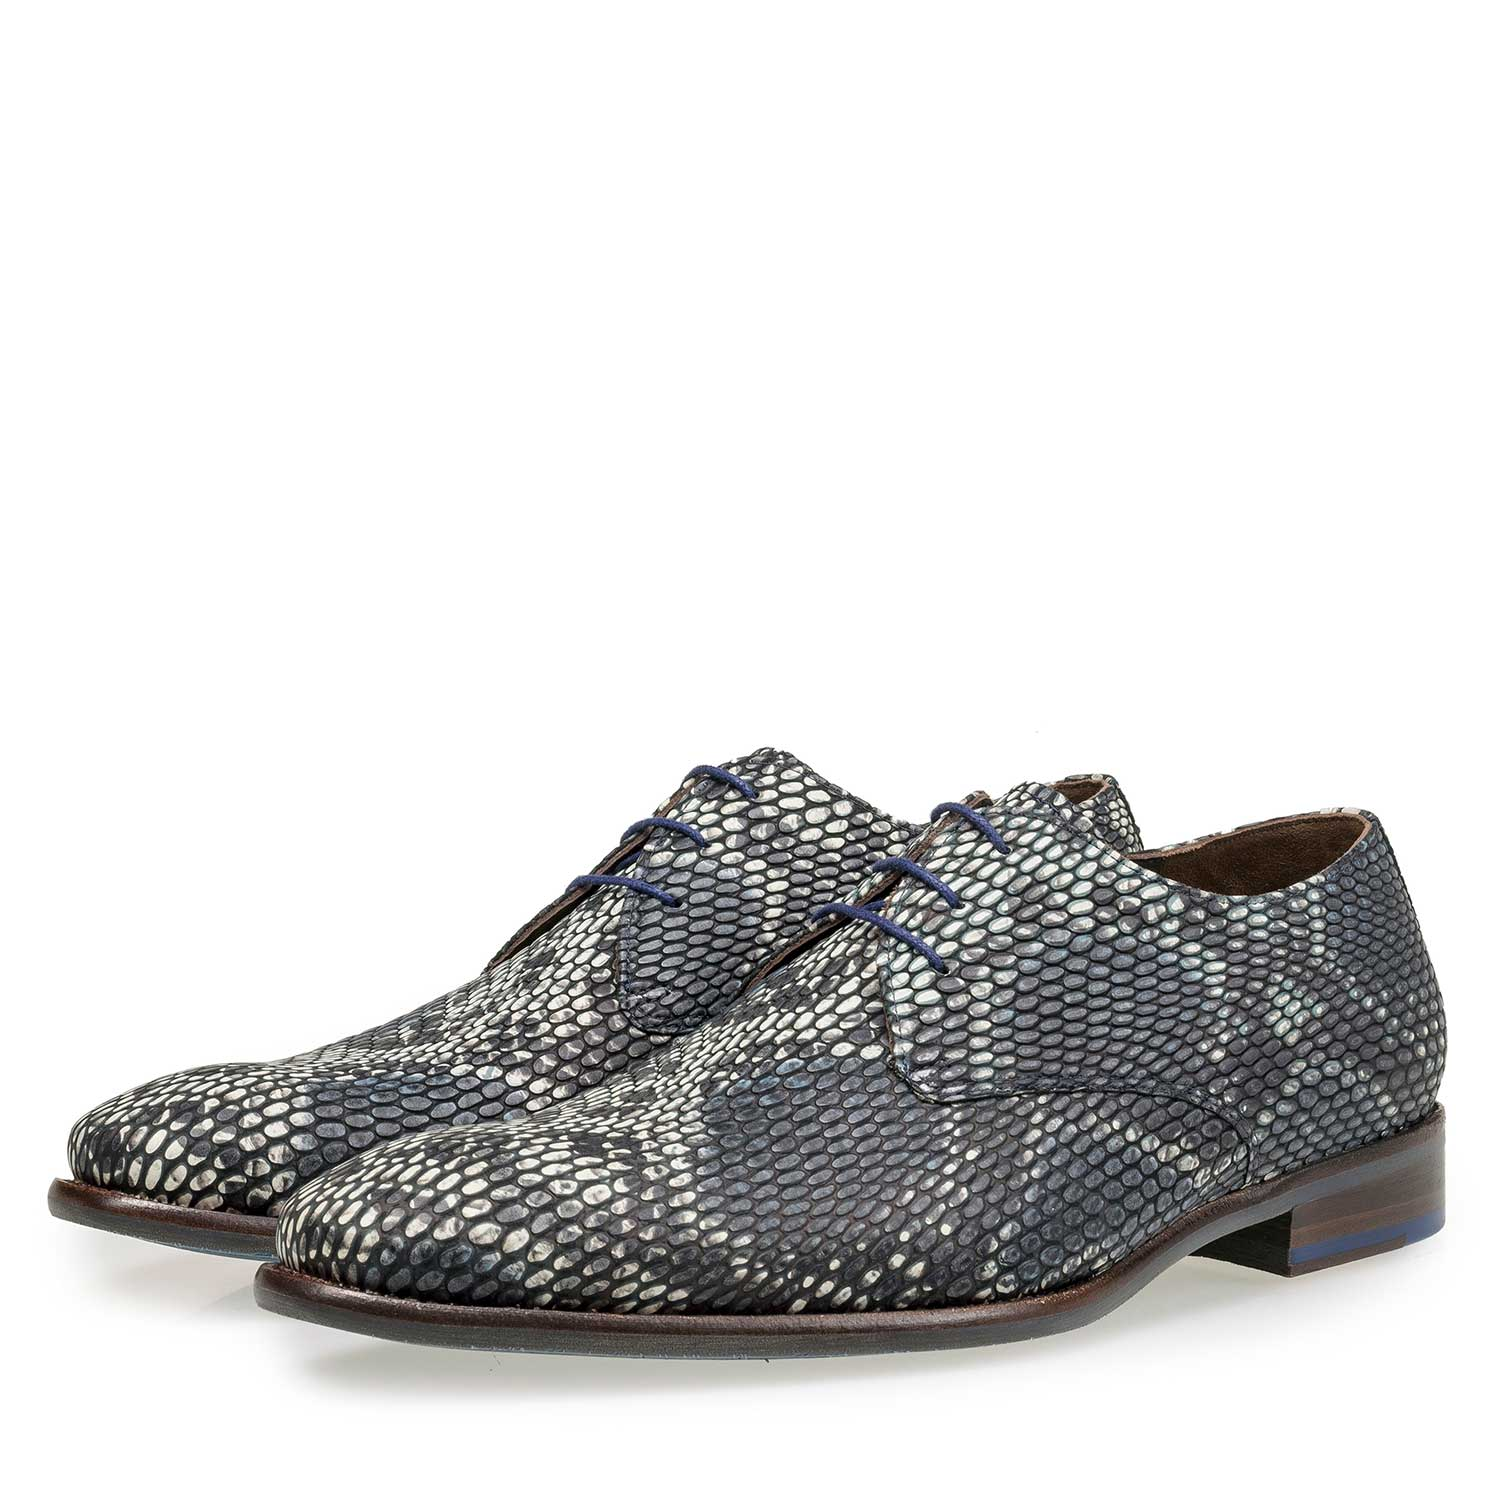 18090/01 - Grey calf leather lace shoe with a snake print